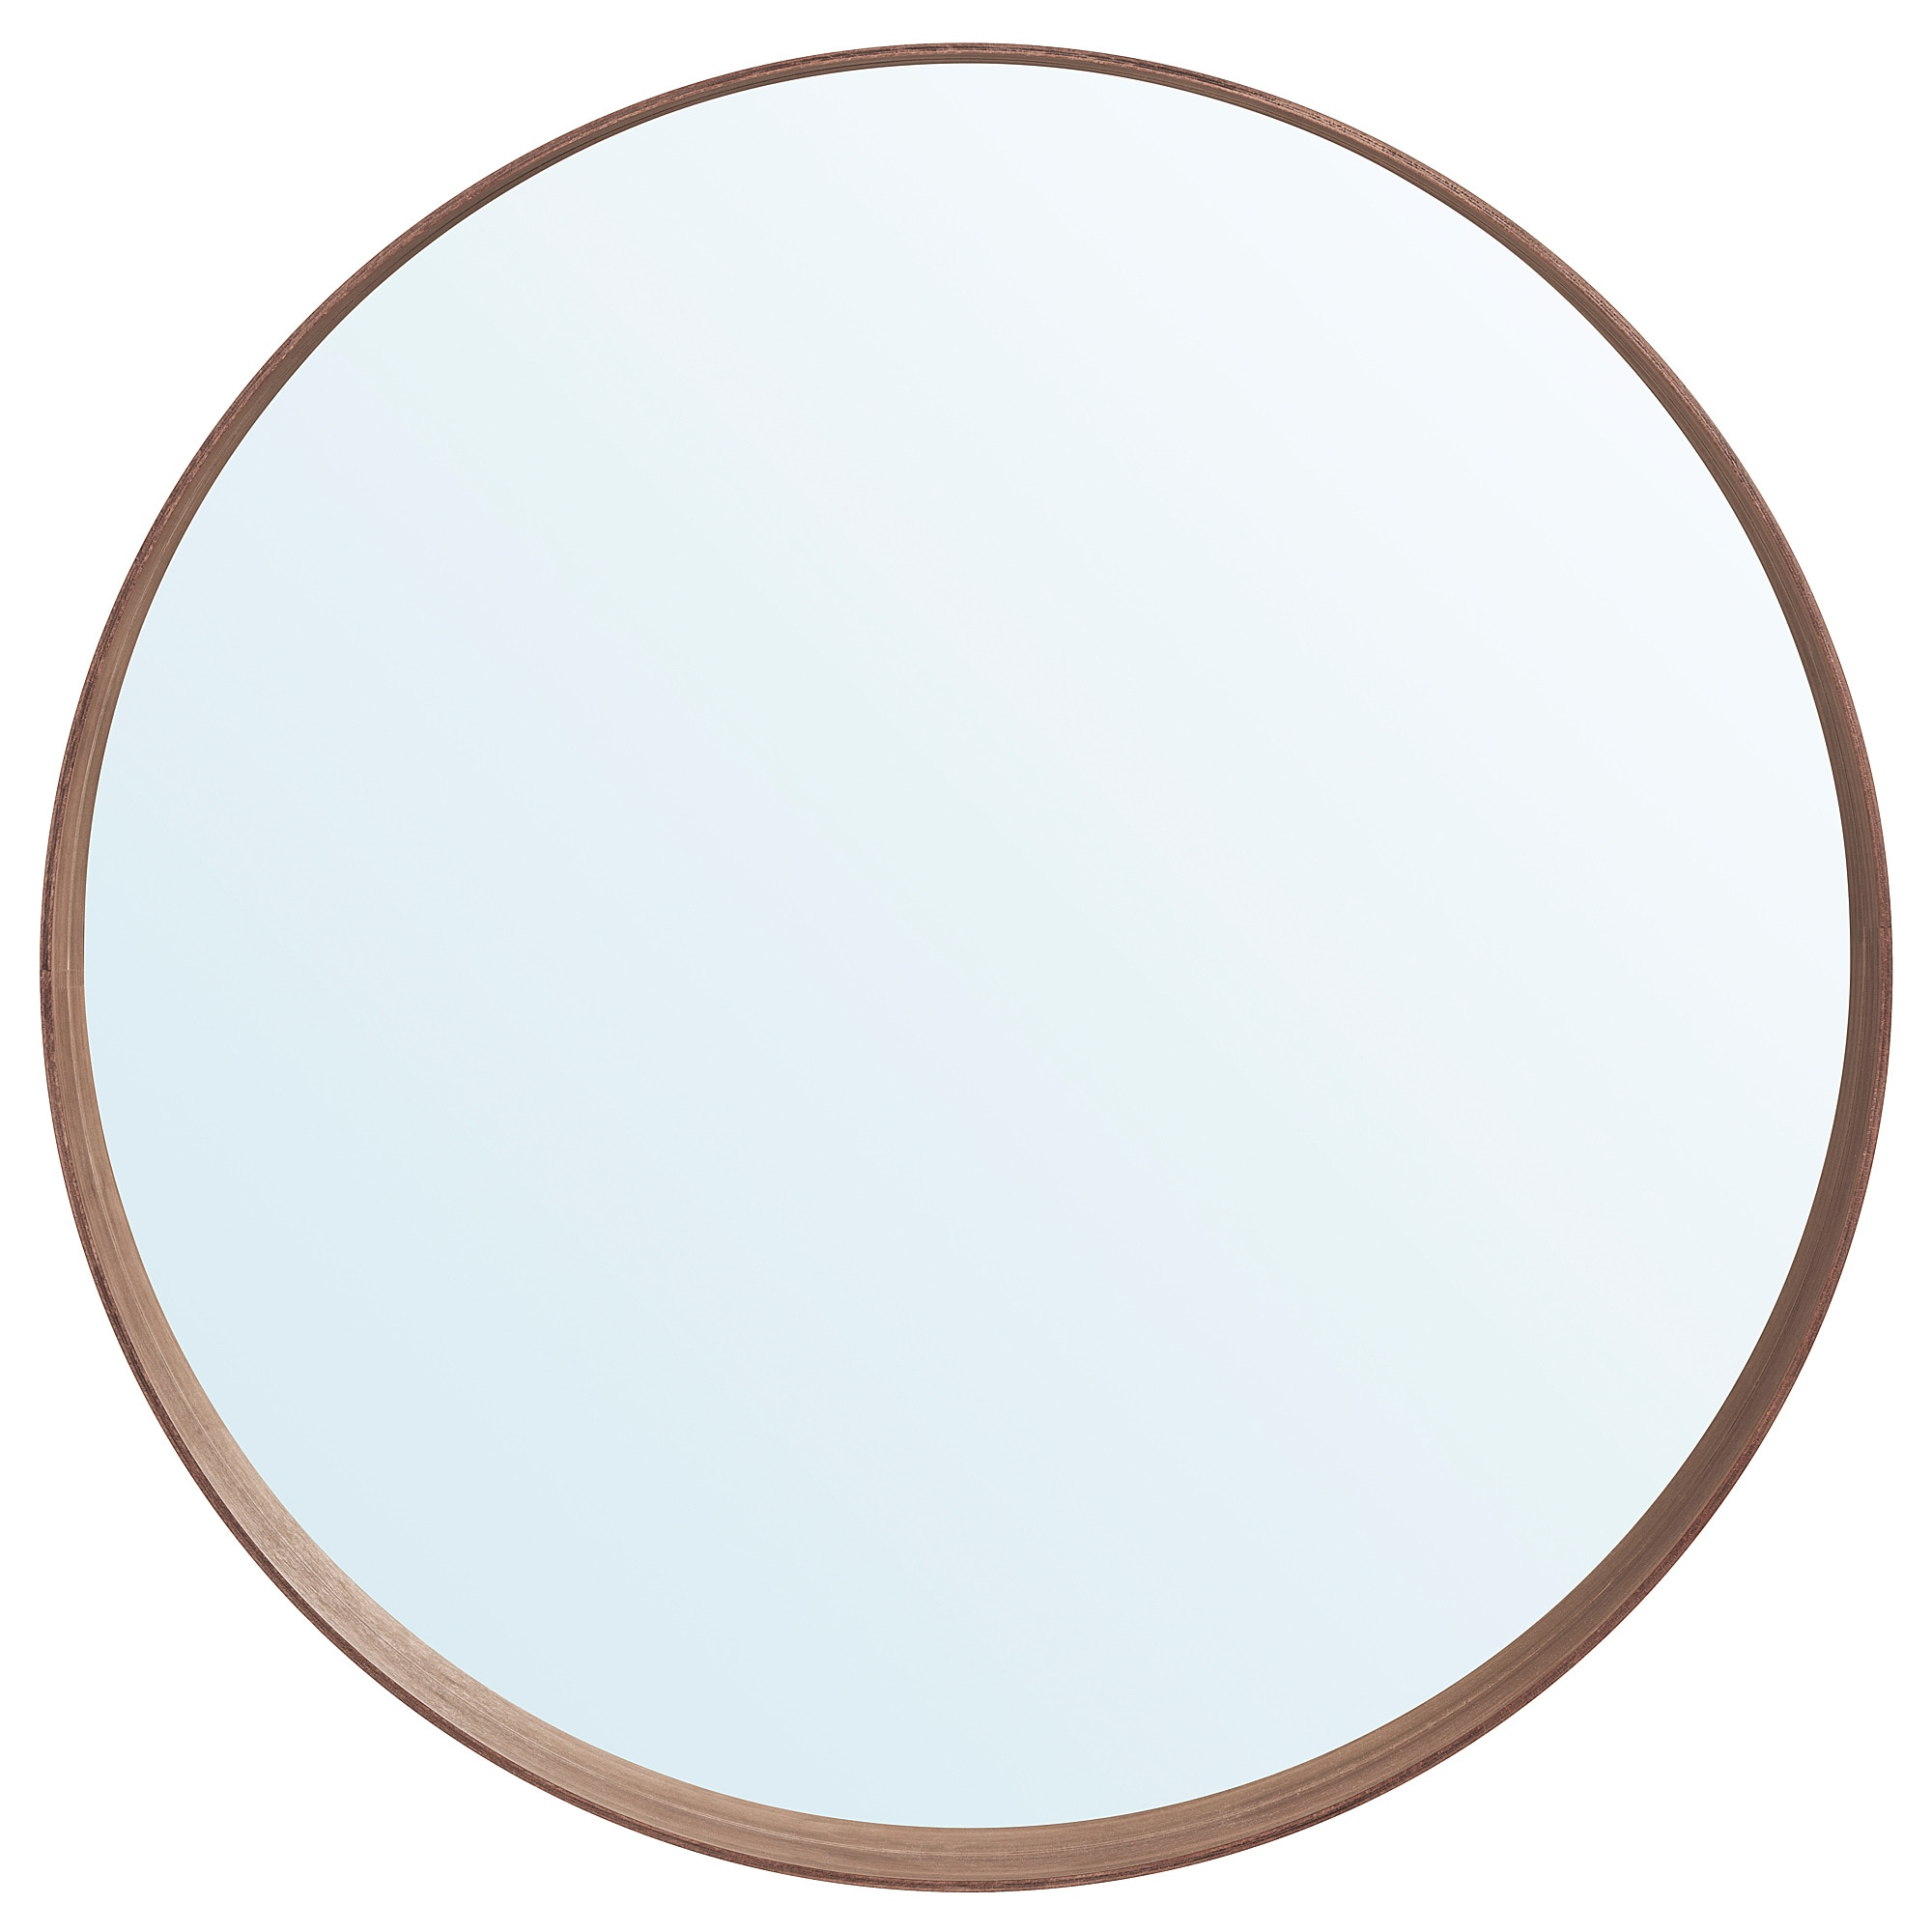 Widely Used Ikea Round Wall Mirrors In Stockholm – Mirror, Walnut Veneer (View 3 of 20)